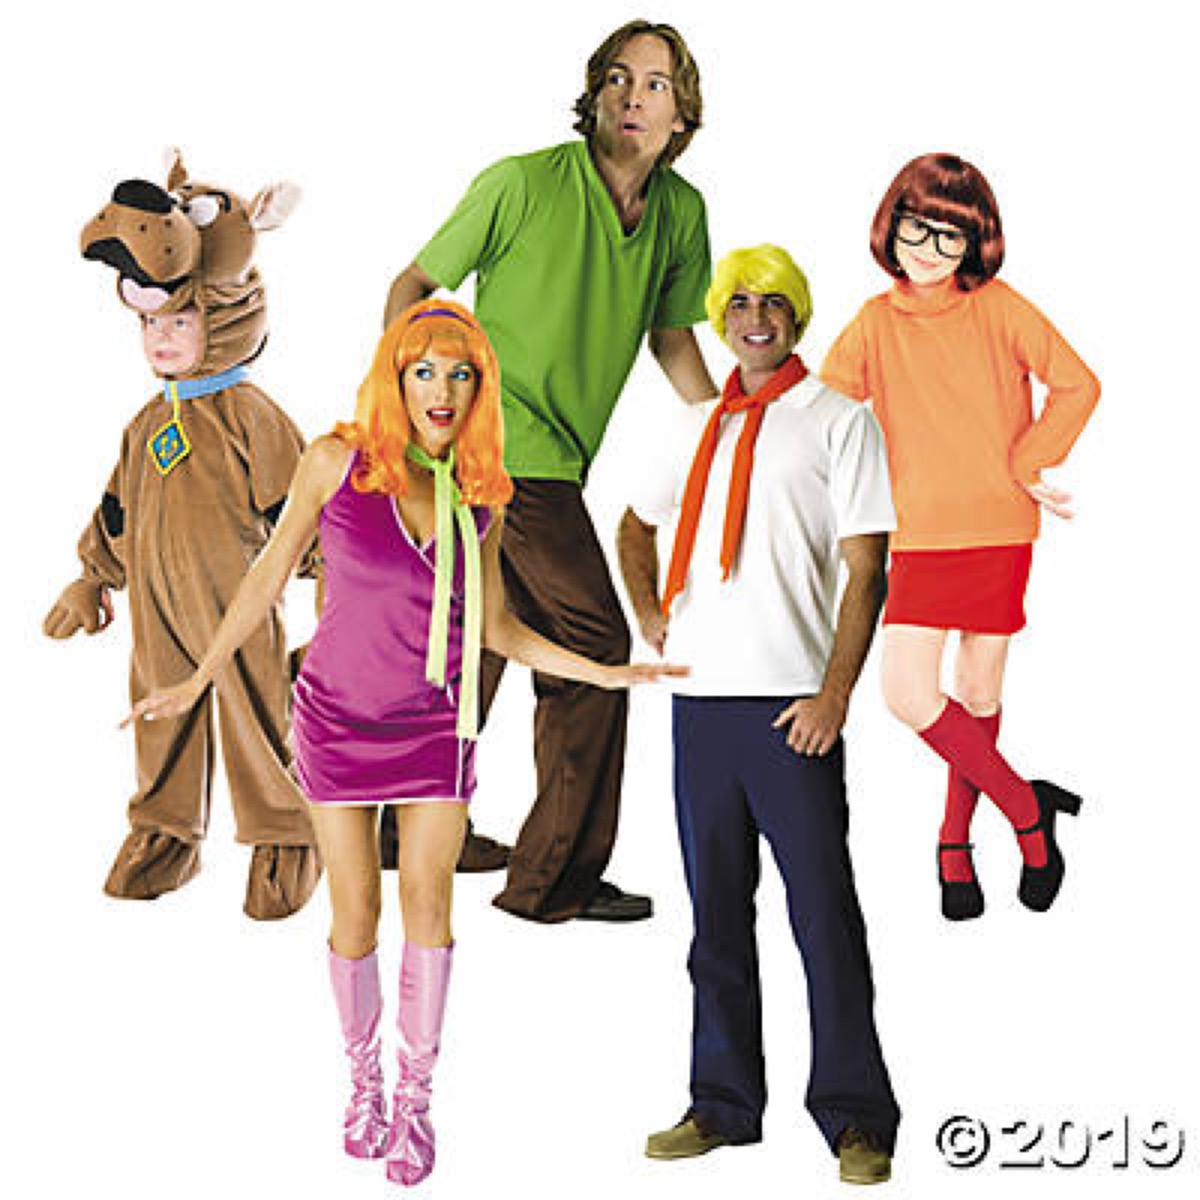 group dressed up as scooby doo characters, family halloween costumes